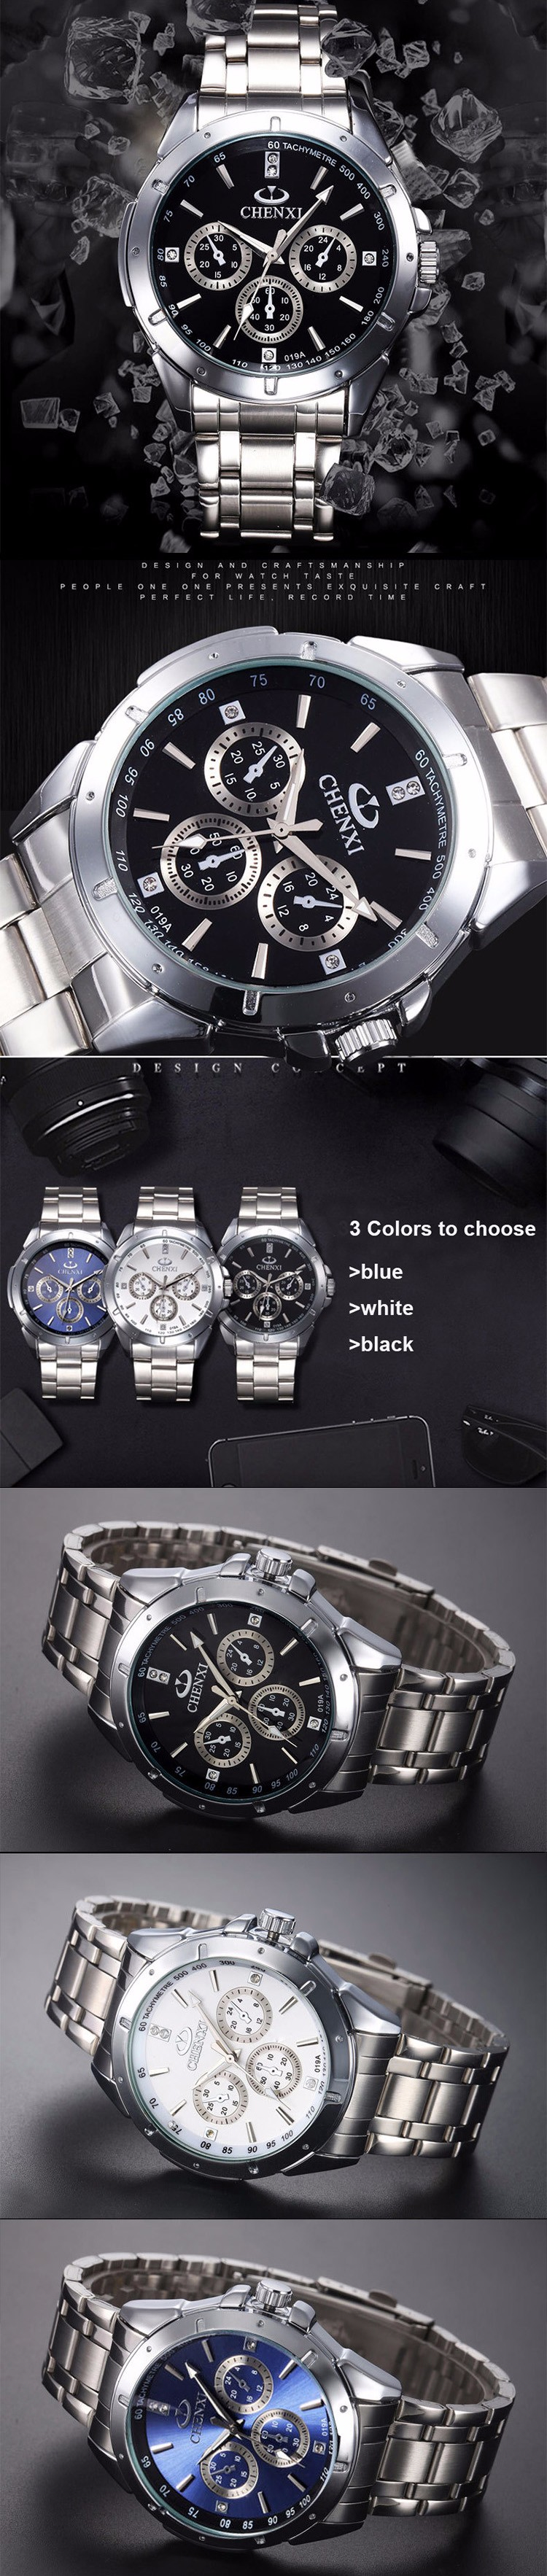 New Stainless Steel Wristwatch Quartz Watch Men Top Brand Luxury Famous Wrist Watch Male Clock For Men Hodinky Relogio Masculino 5  New Stainless Steel Wristwatch Quartz Watch Men Top Brand Luxury Famous Wrist Watch Male Clock For Men Hodinky Relogio Masculino HTB10gJTOpXXXXX